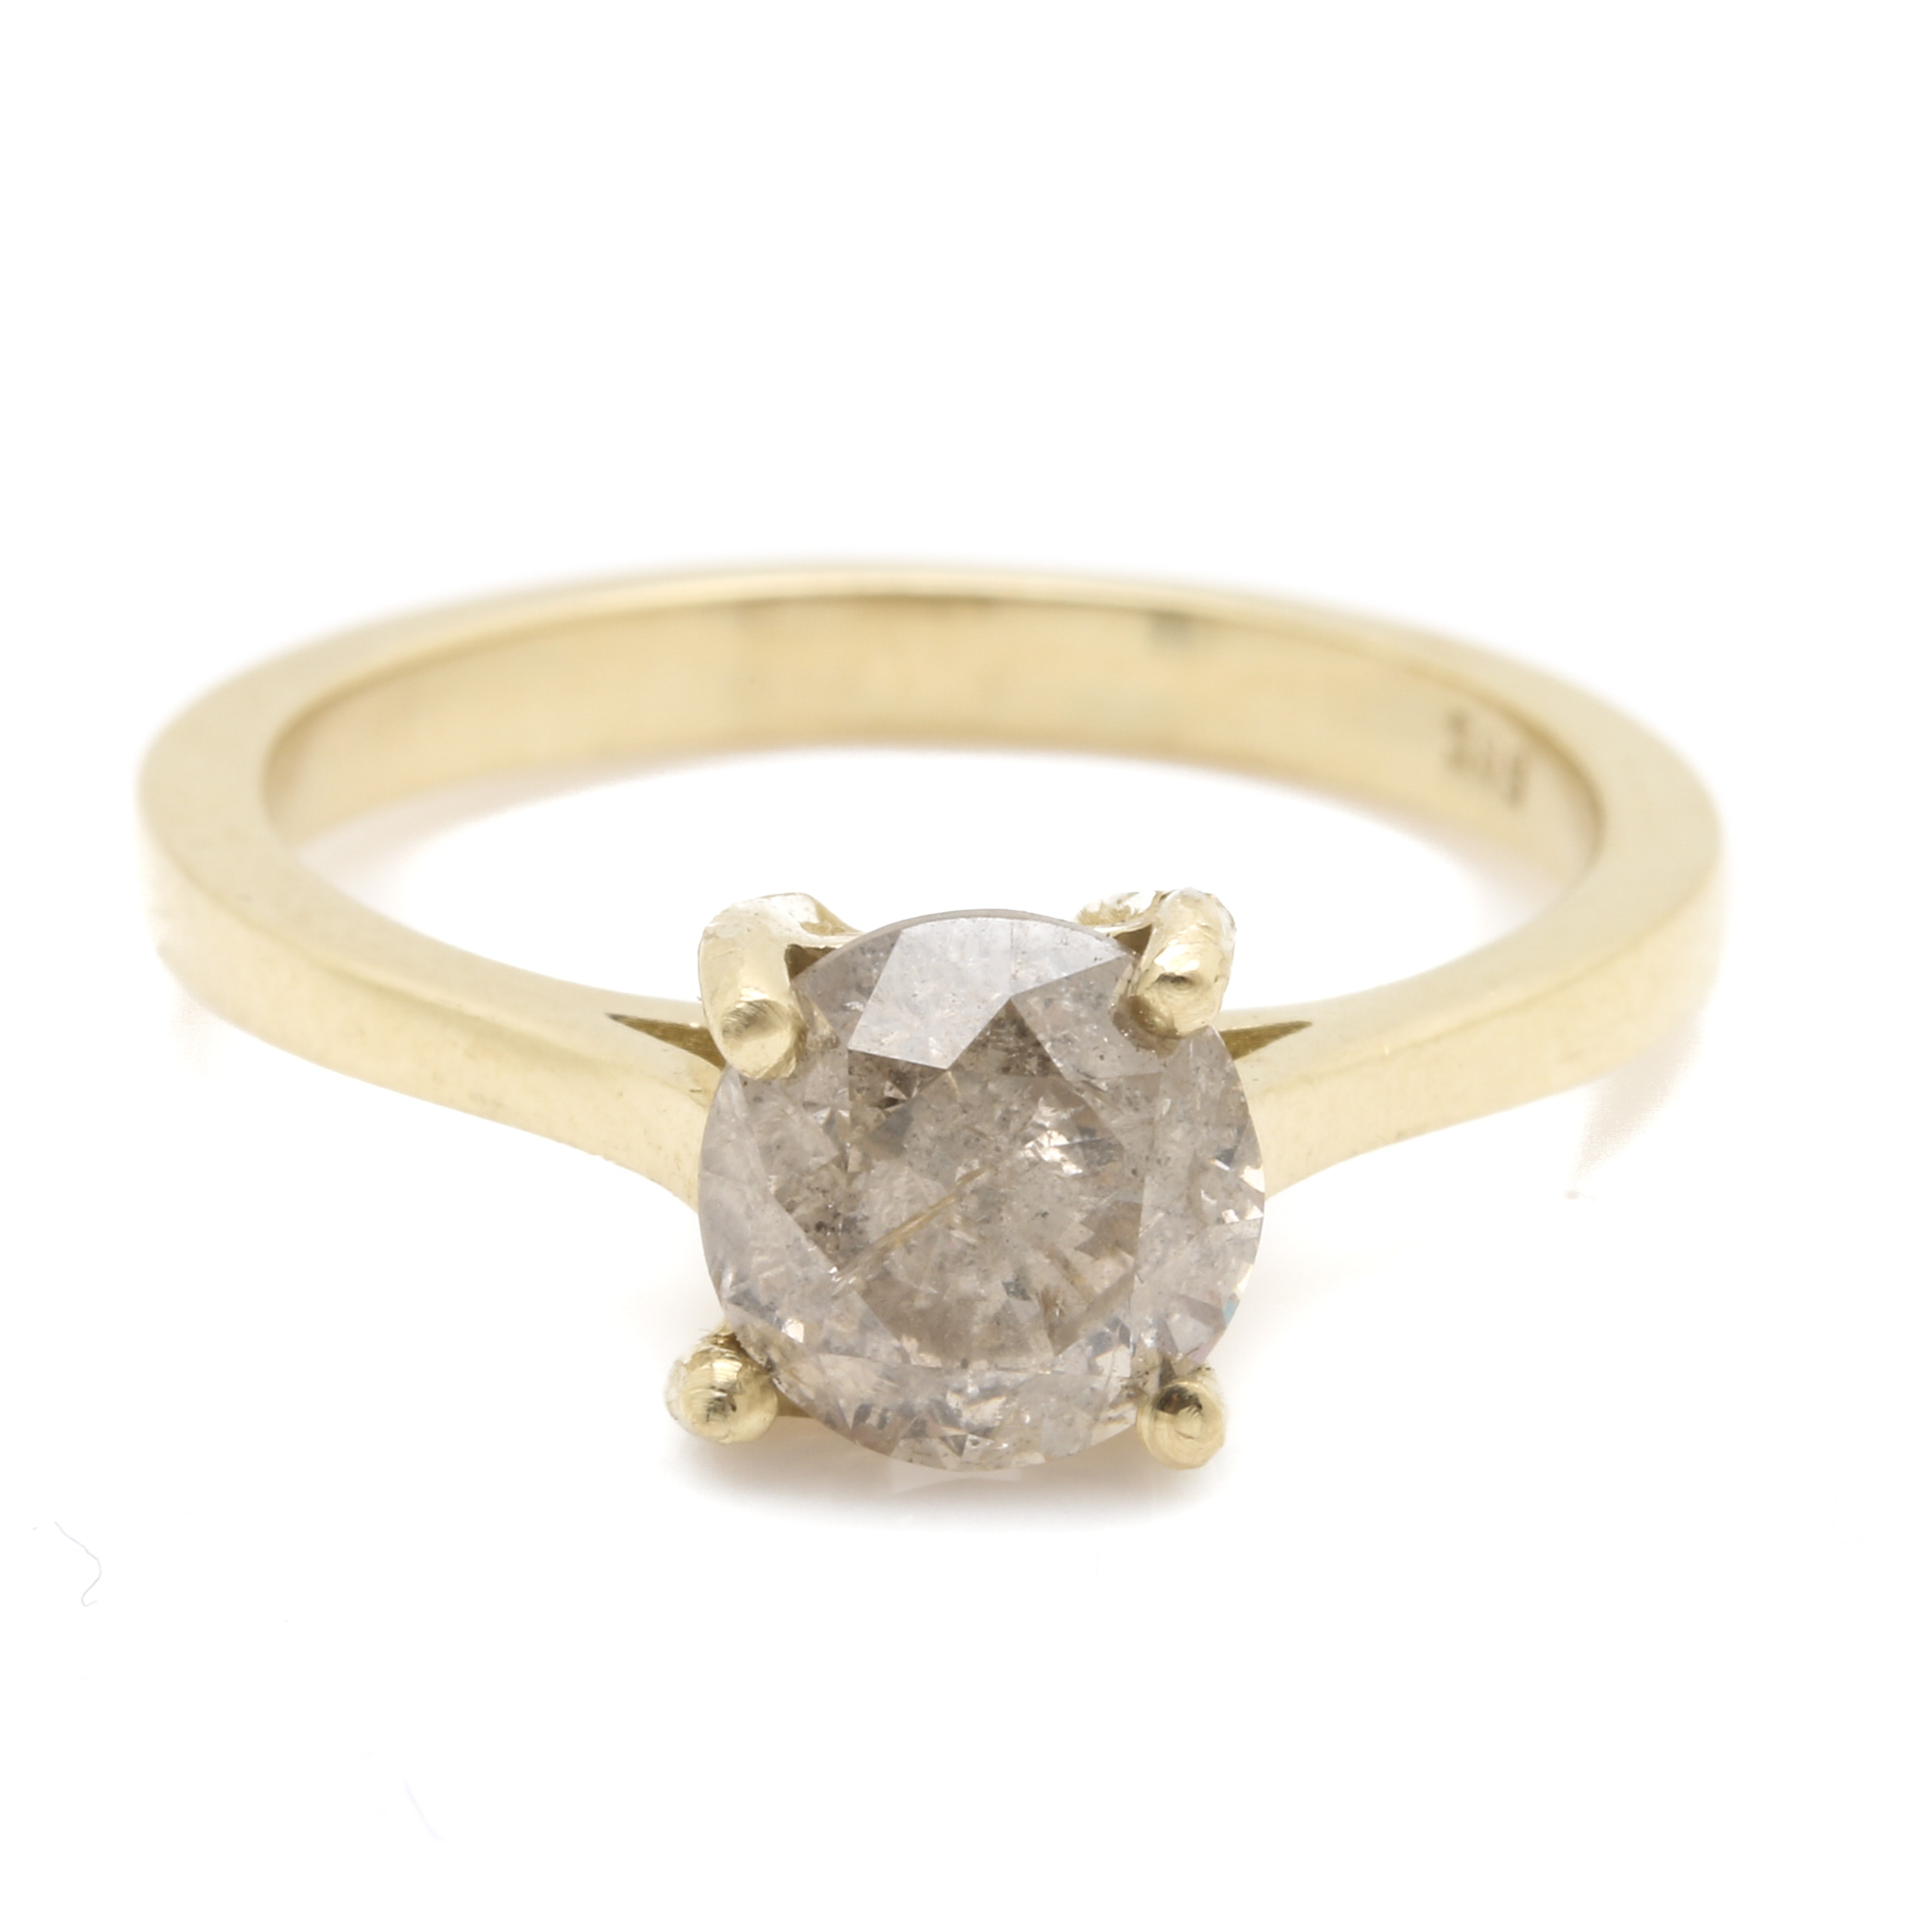 14K Yellow Gold 1.27 CT Diamond Solitaire Ring